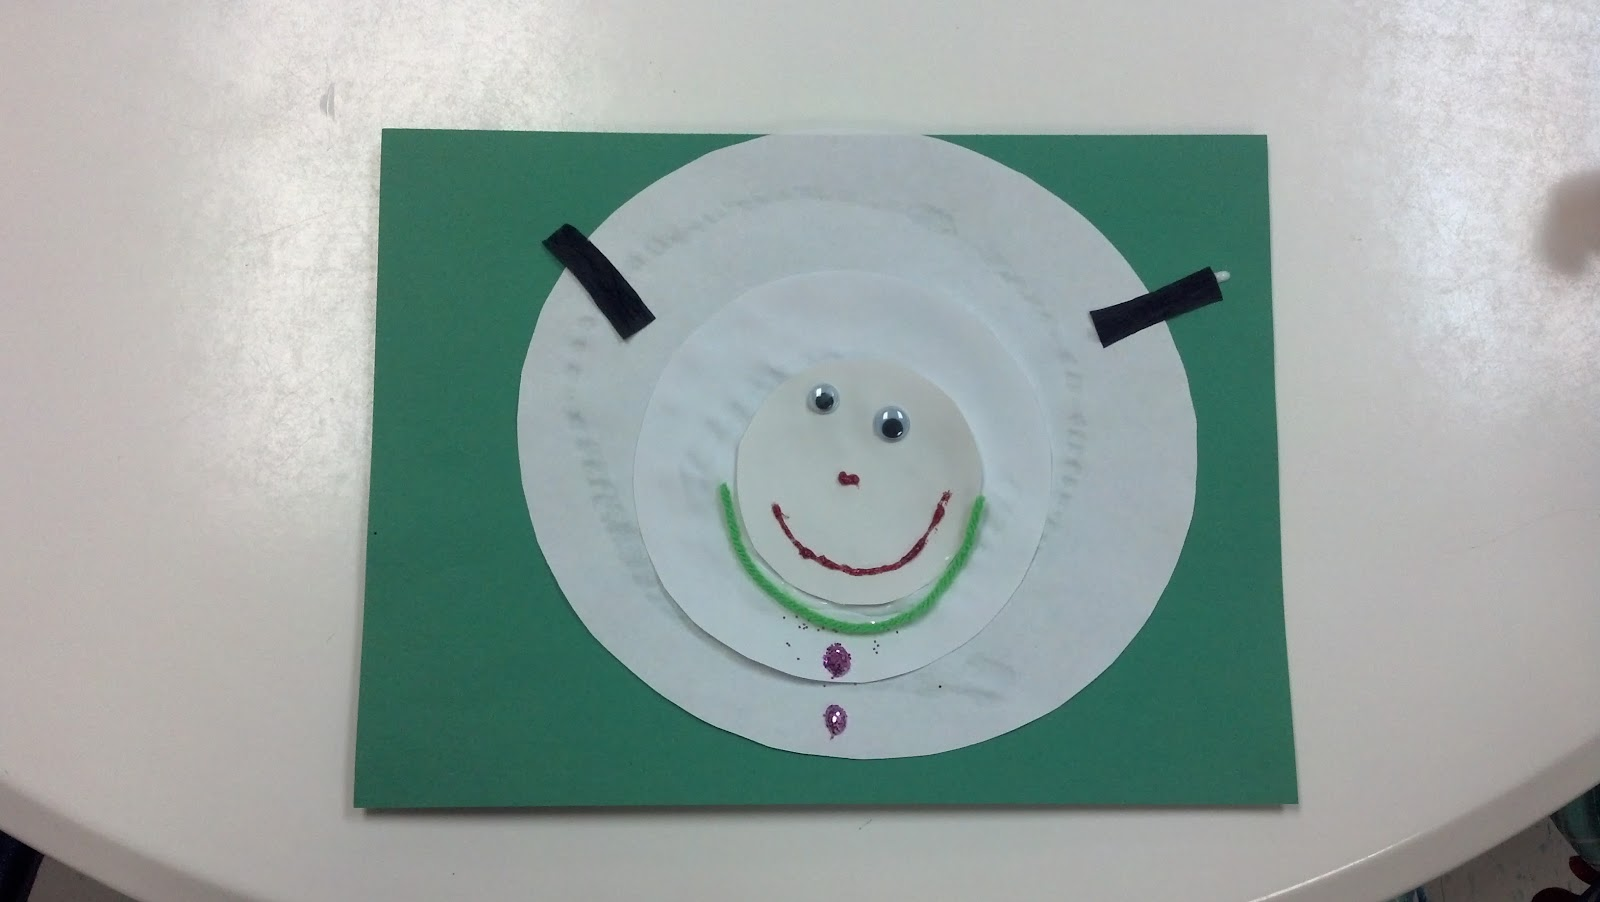 Diving Into Learning Oh No My Snowman Melted